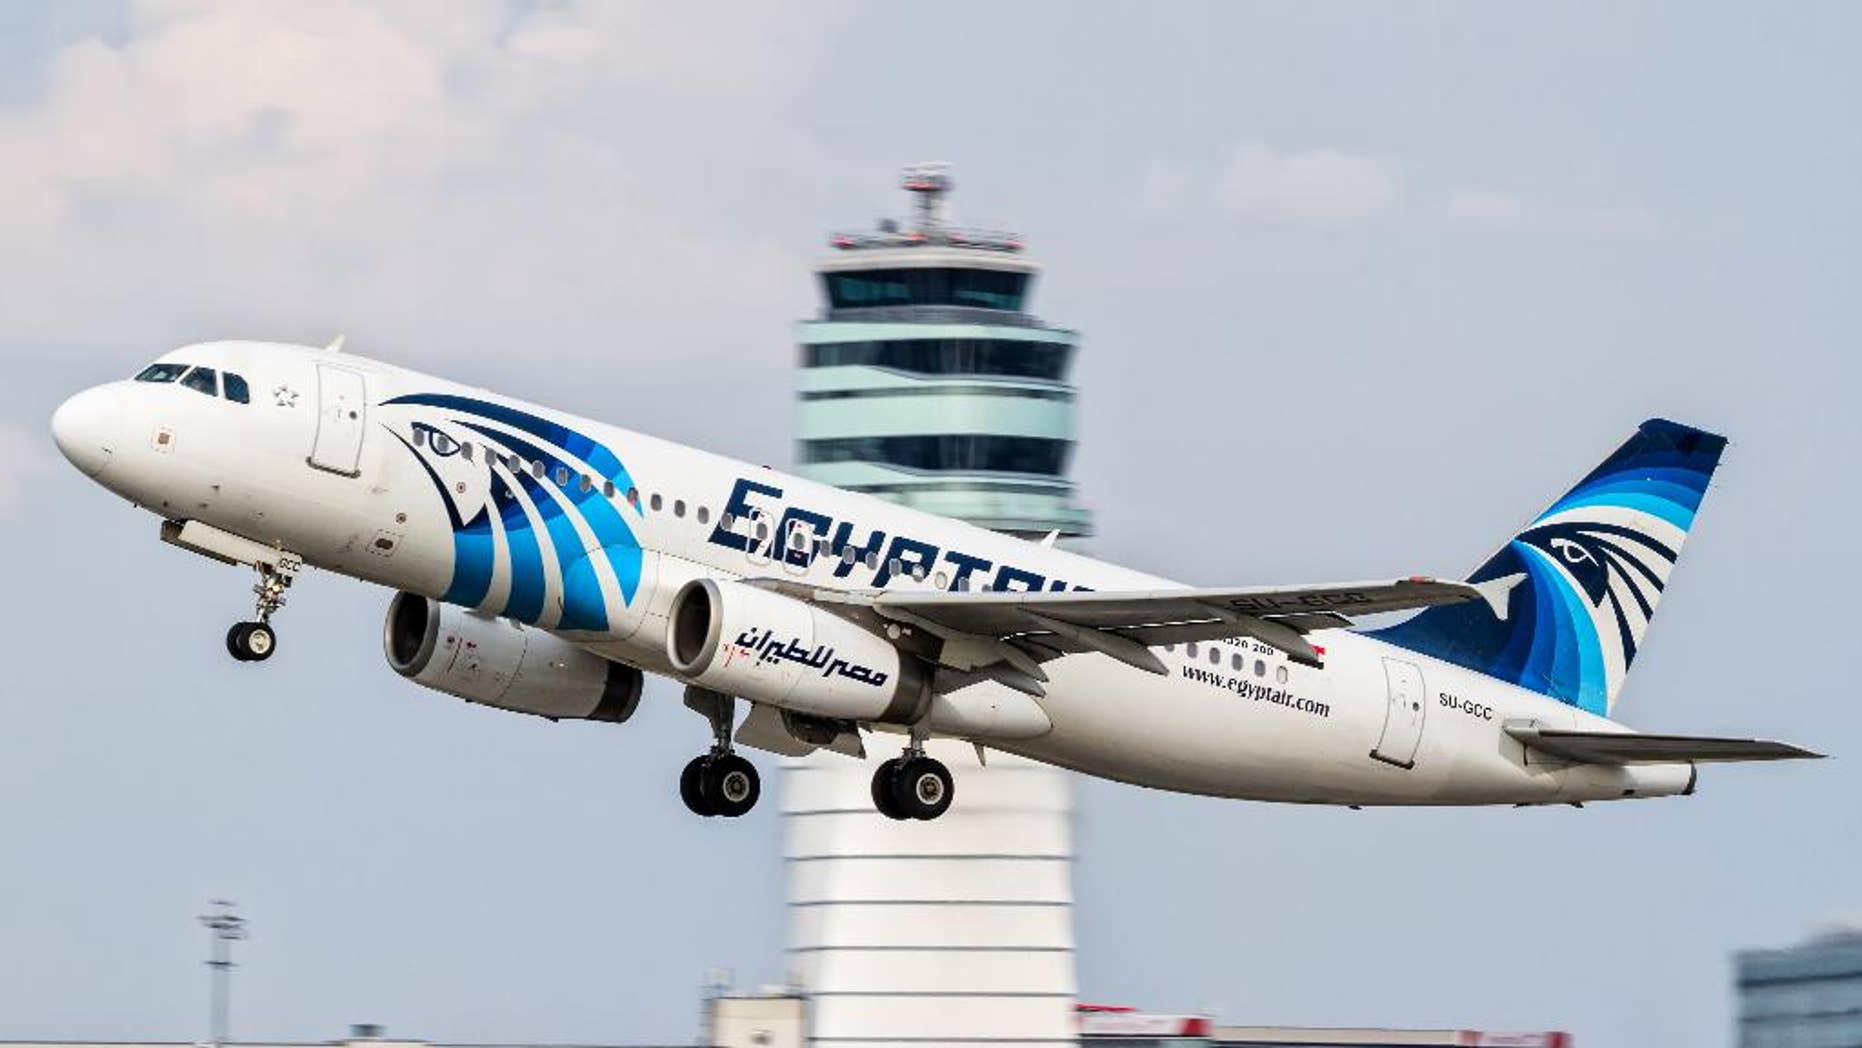 """This August 21, 2015 photo shows an EgyptAir Airbus A320 with the registration SU-GCC taking off from Vienna International Airport, Austria. Egyptian aviation officials said on Thursday May 19, 2016 that an EgyptAir plane with the registration SU-GCC, traveling from Paris to Cairo with 66 passengers and crew on board has crashed off the Greek island of Karpathos. Meanwhile, Egypt's chief prosecutor Nabil Sadek says he has ordered an """"urgent investigation"""" into crash. Sadek instructed the National Security Prosecutor to open an """"extensive investigation"""" in the incident. (AP Photo/Thomas Ranner)"""